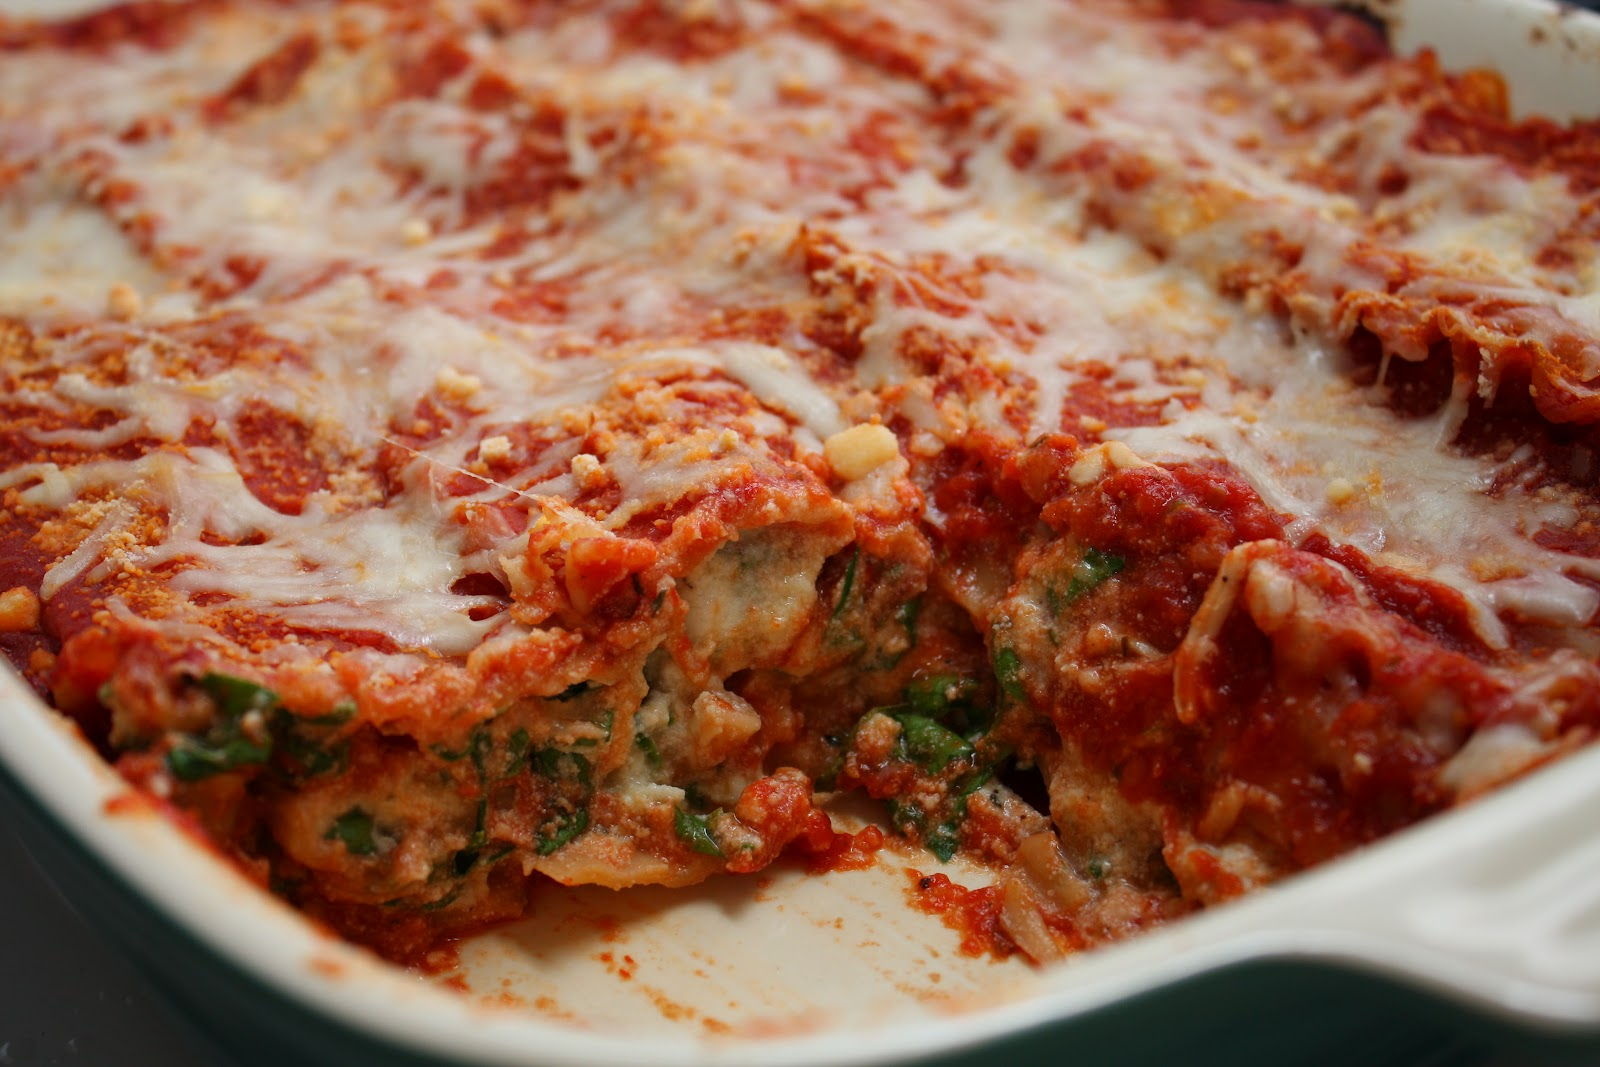 Smart Eats & Smart Sweets: Spinach Lasagna